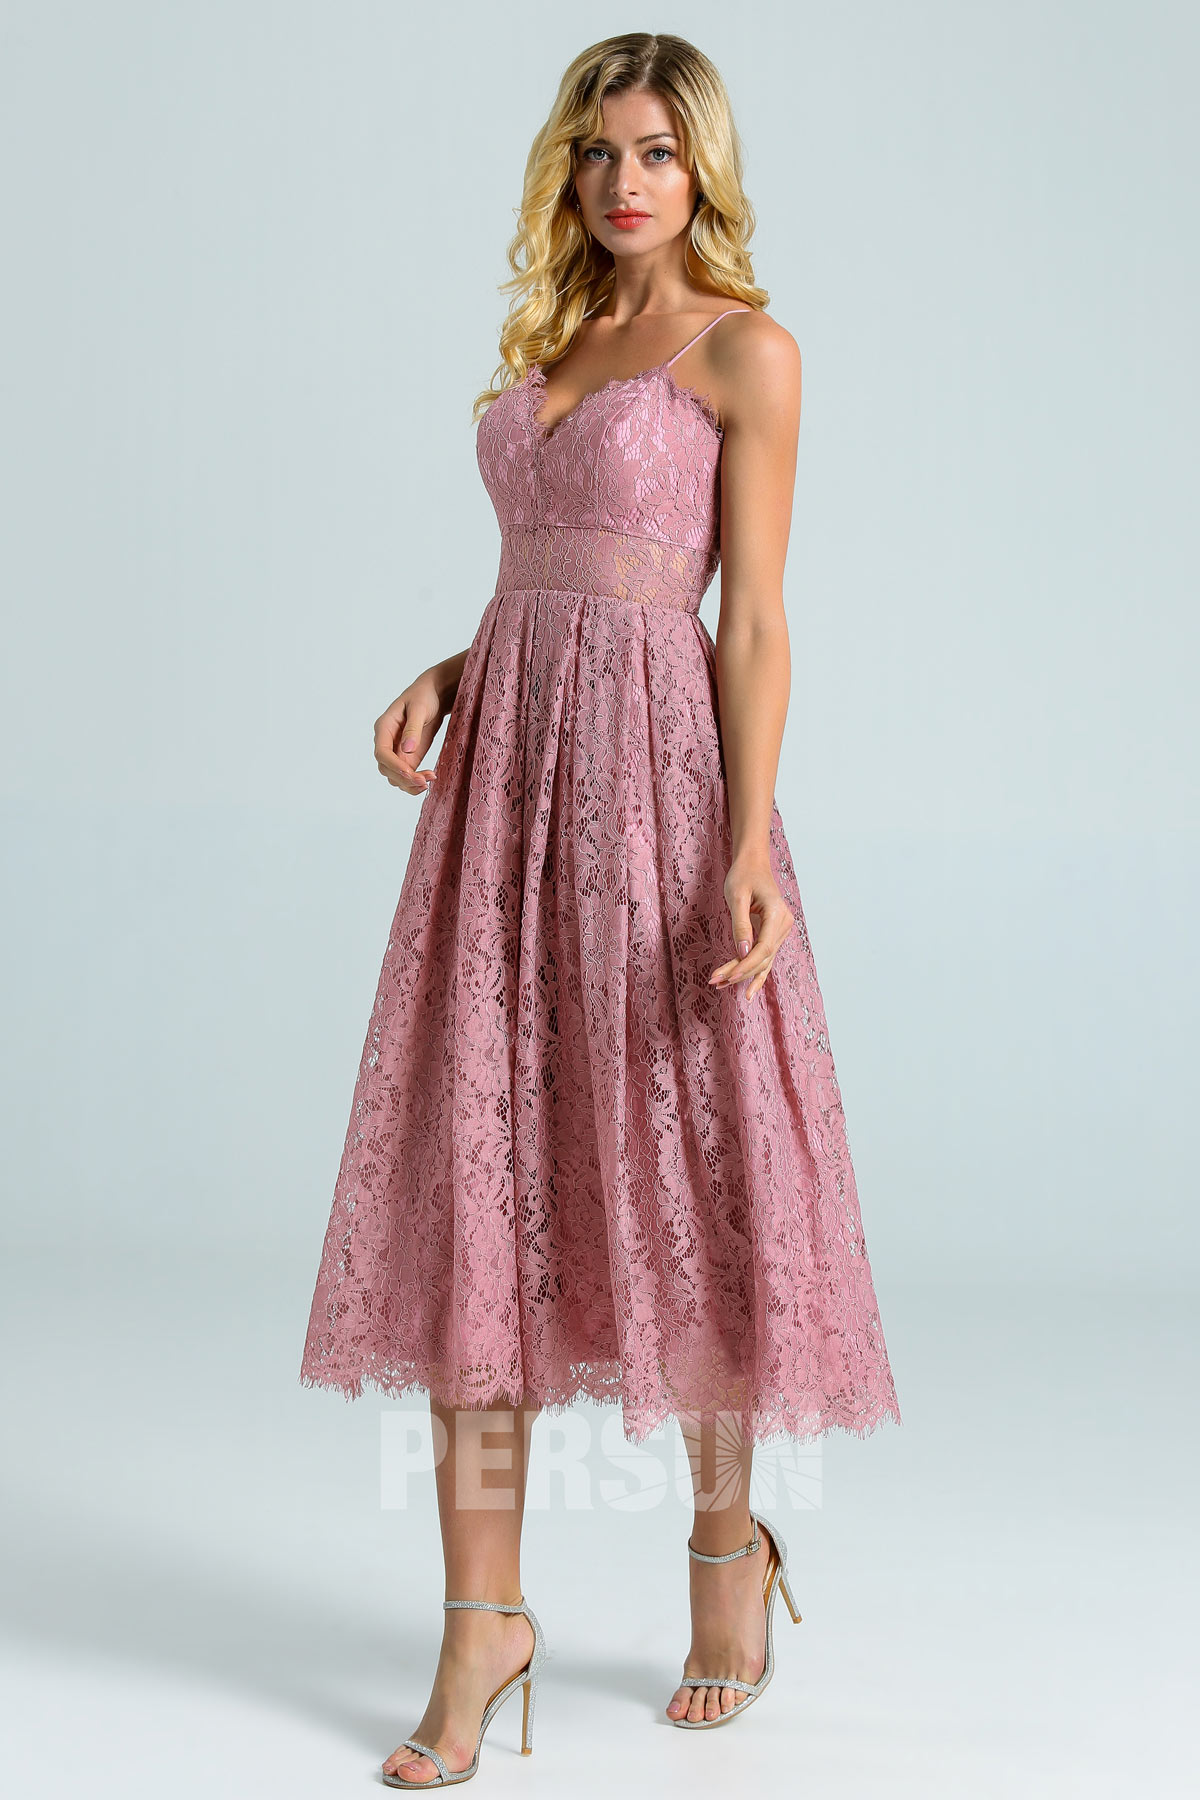 robe de cocktail mi-longue rose parme en dentelle taille illusion à bretelle fine